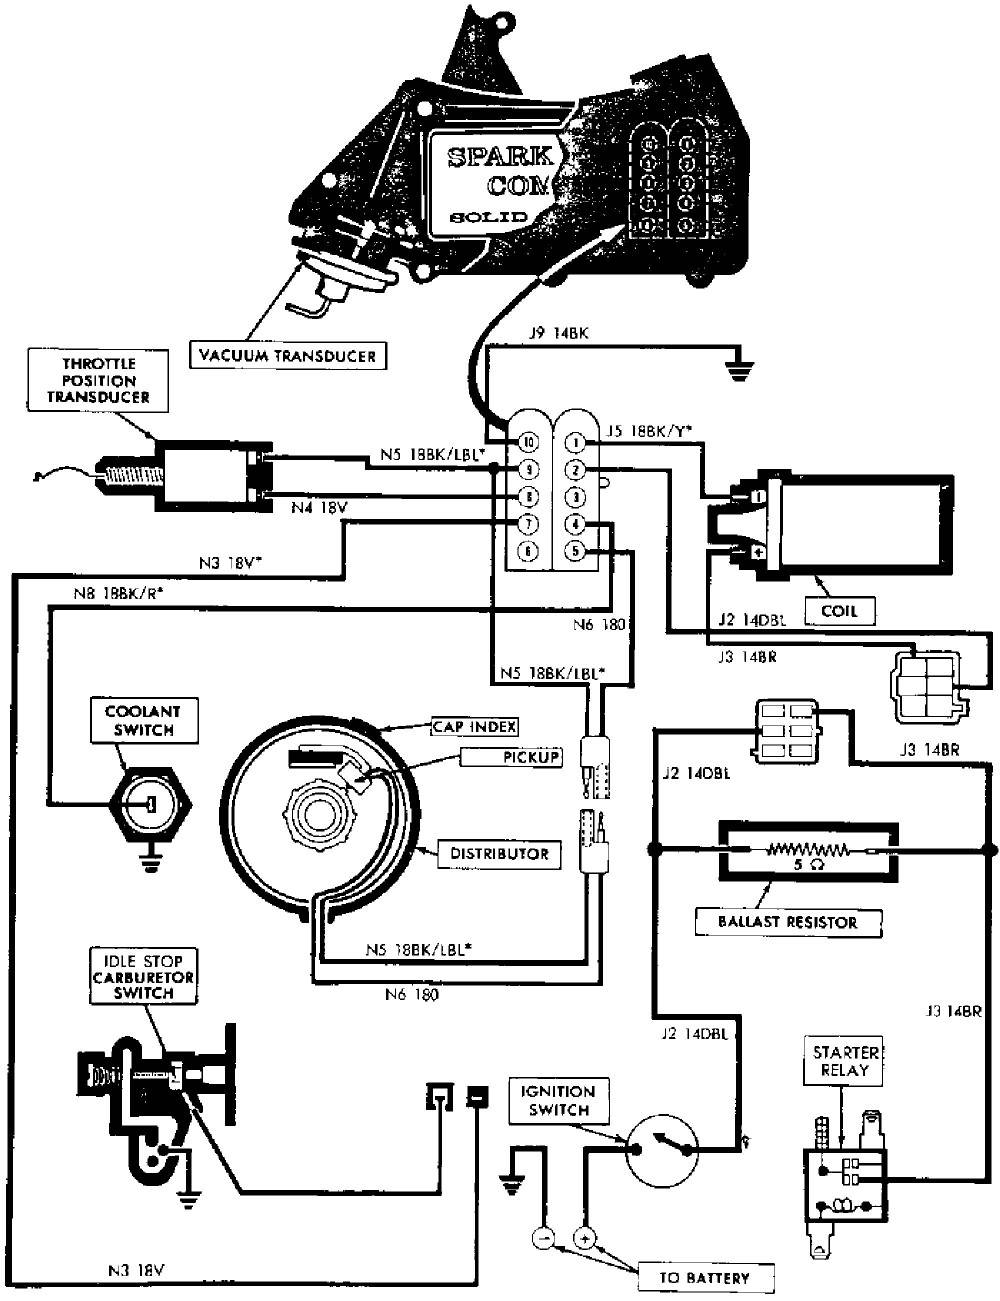 hight resolution of wrg 7045 plymouth volare wiring diagram 1976 plymouth volare wiring diagram explained wiring diagrams wiring